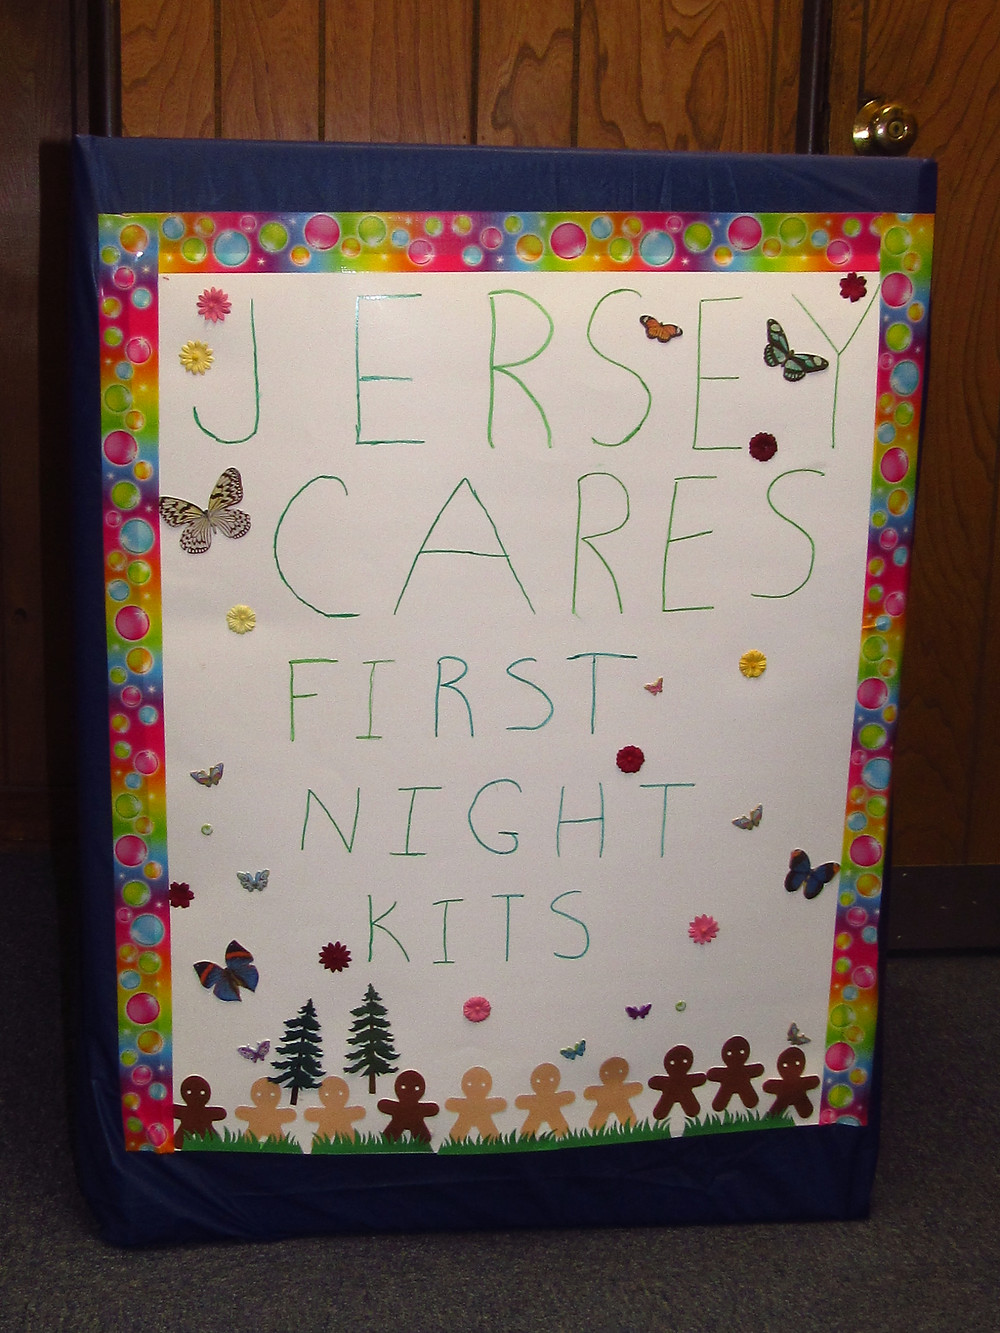 Jersey Cares Donation Box